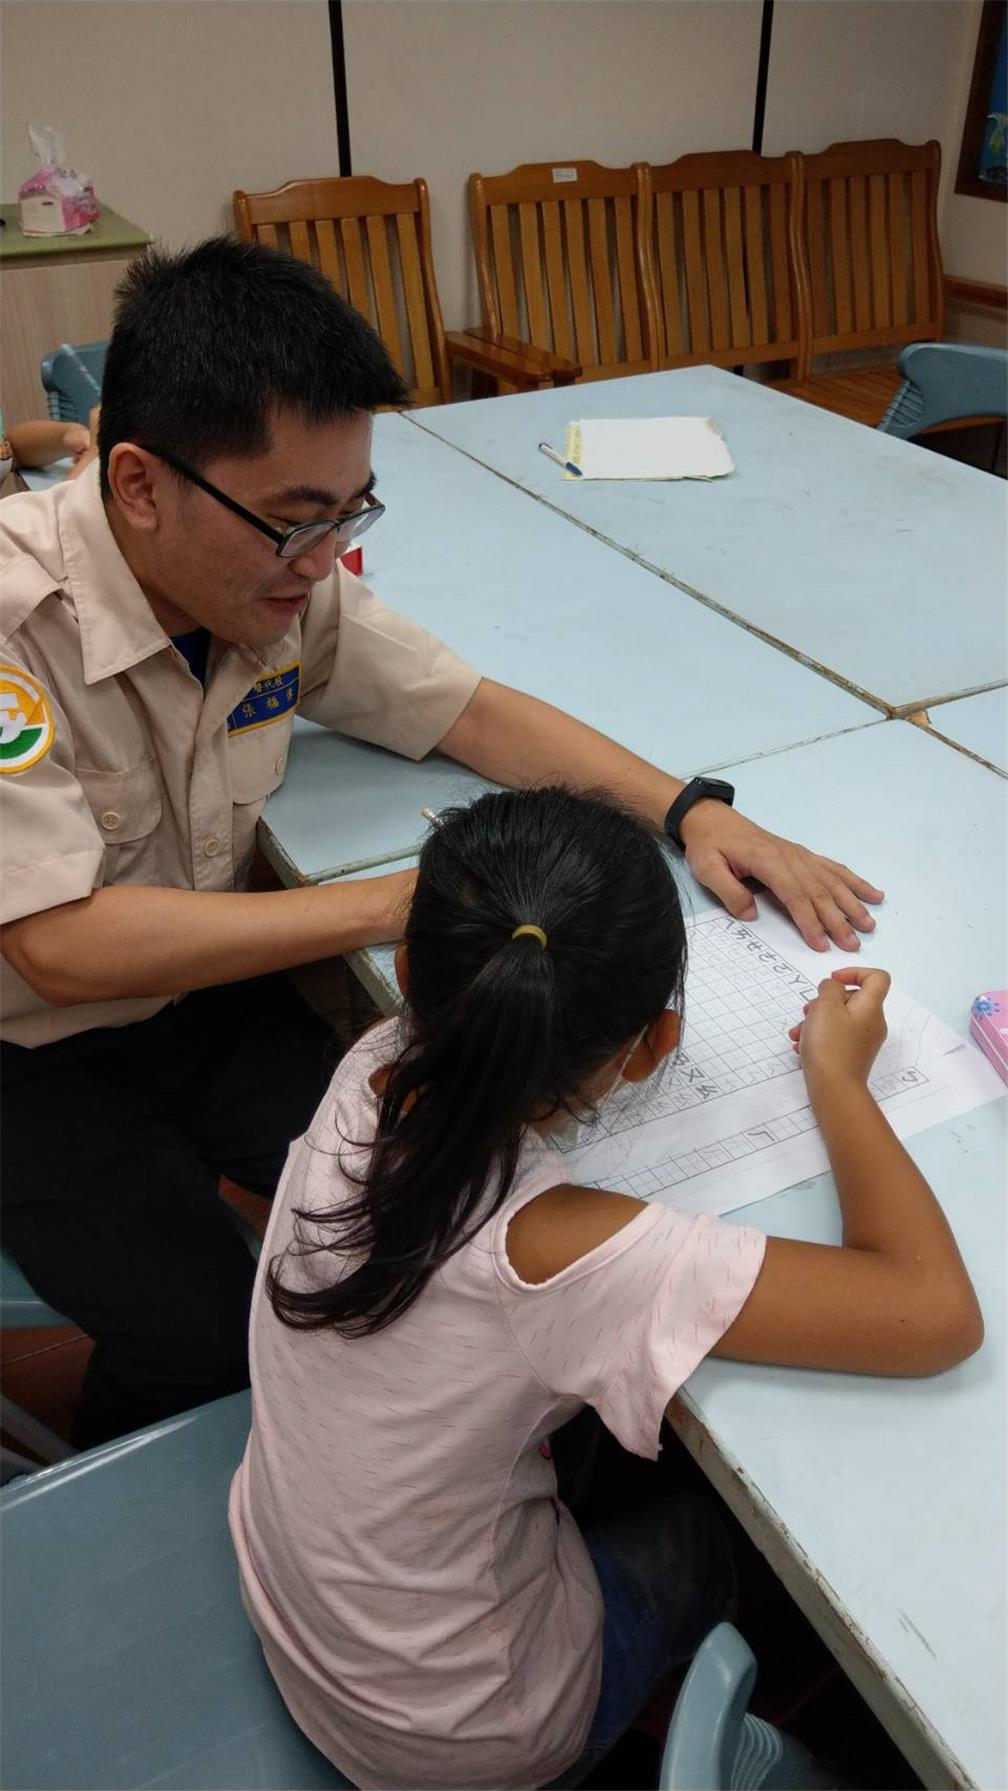 The draftees draw on their expertise to help the children with their assignments and learning activities.